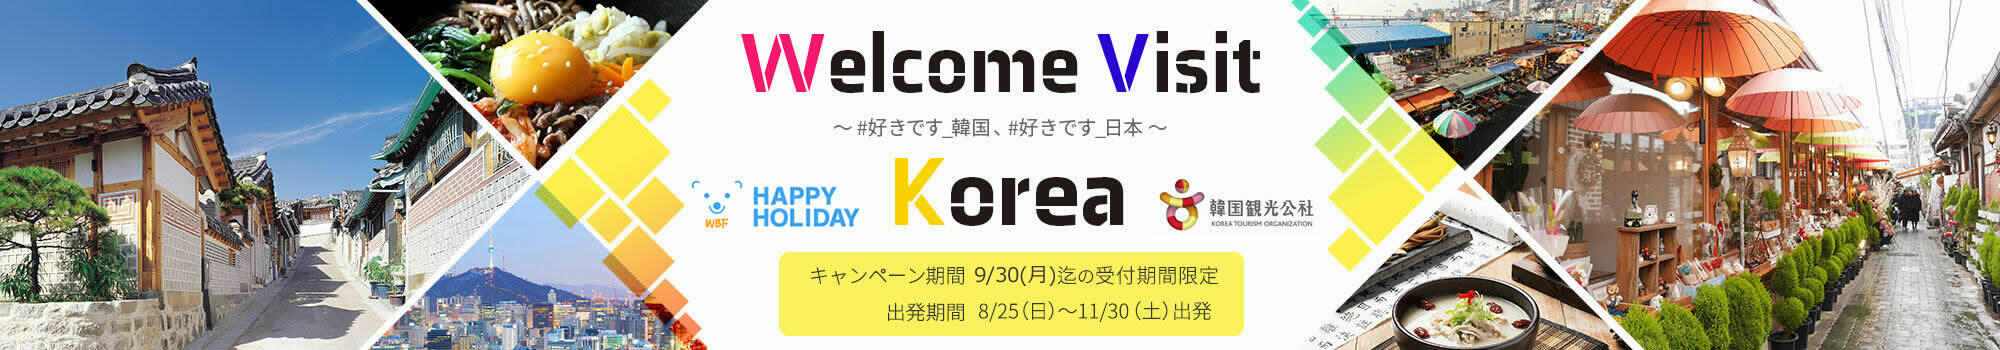 Welcome Visit Korea